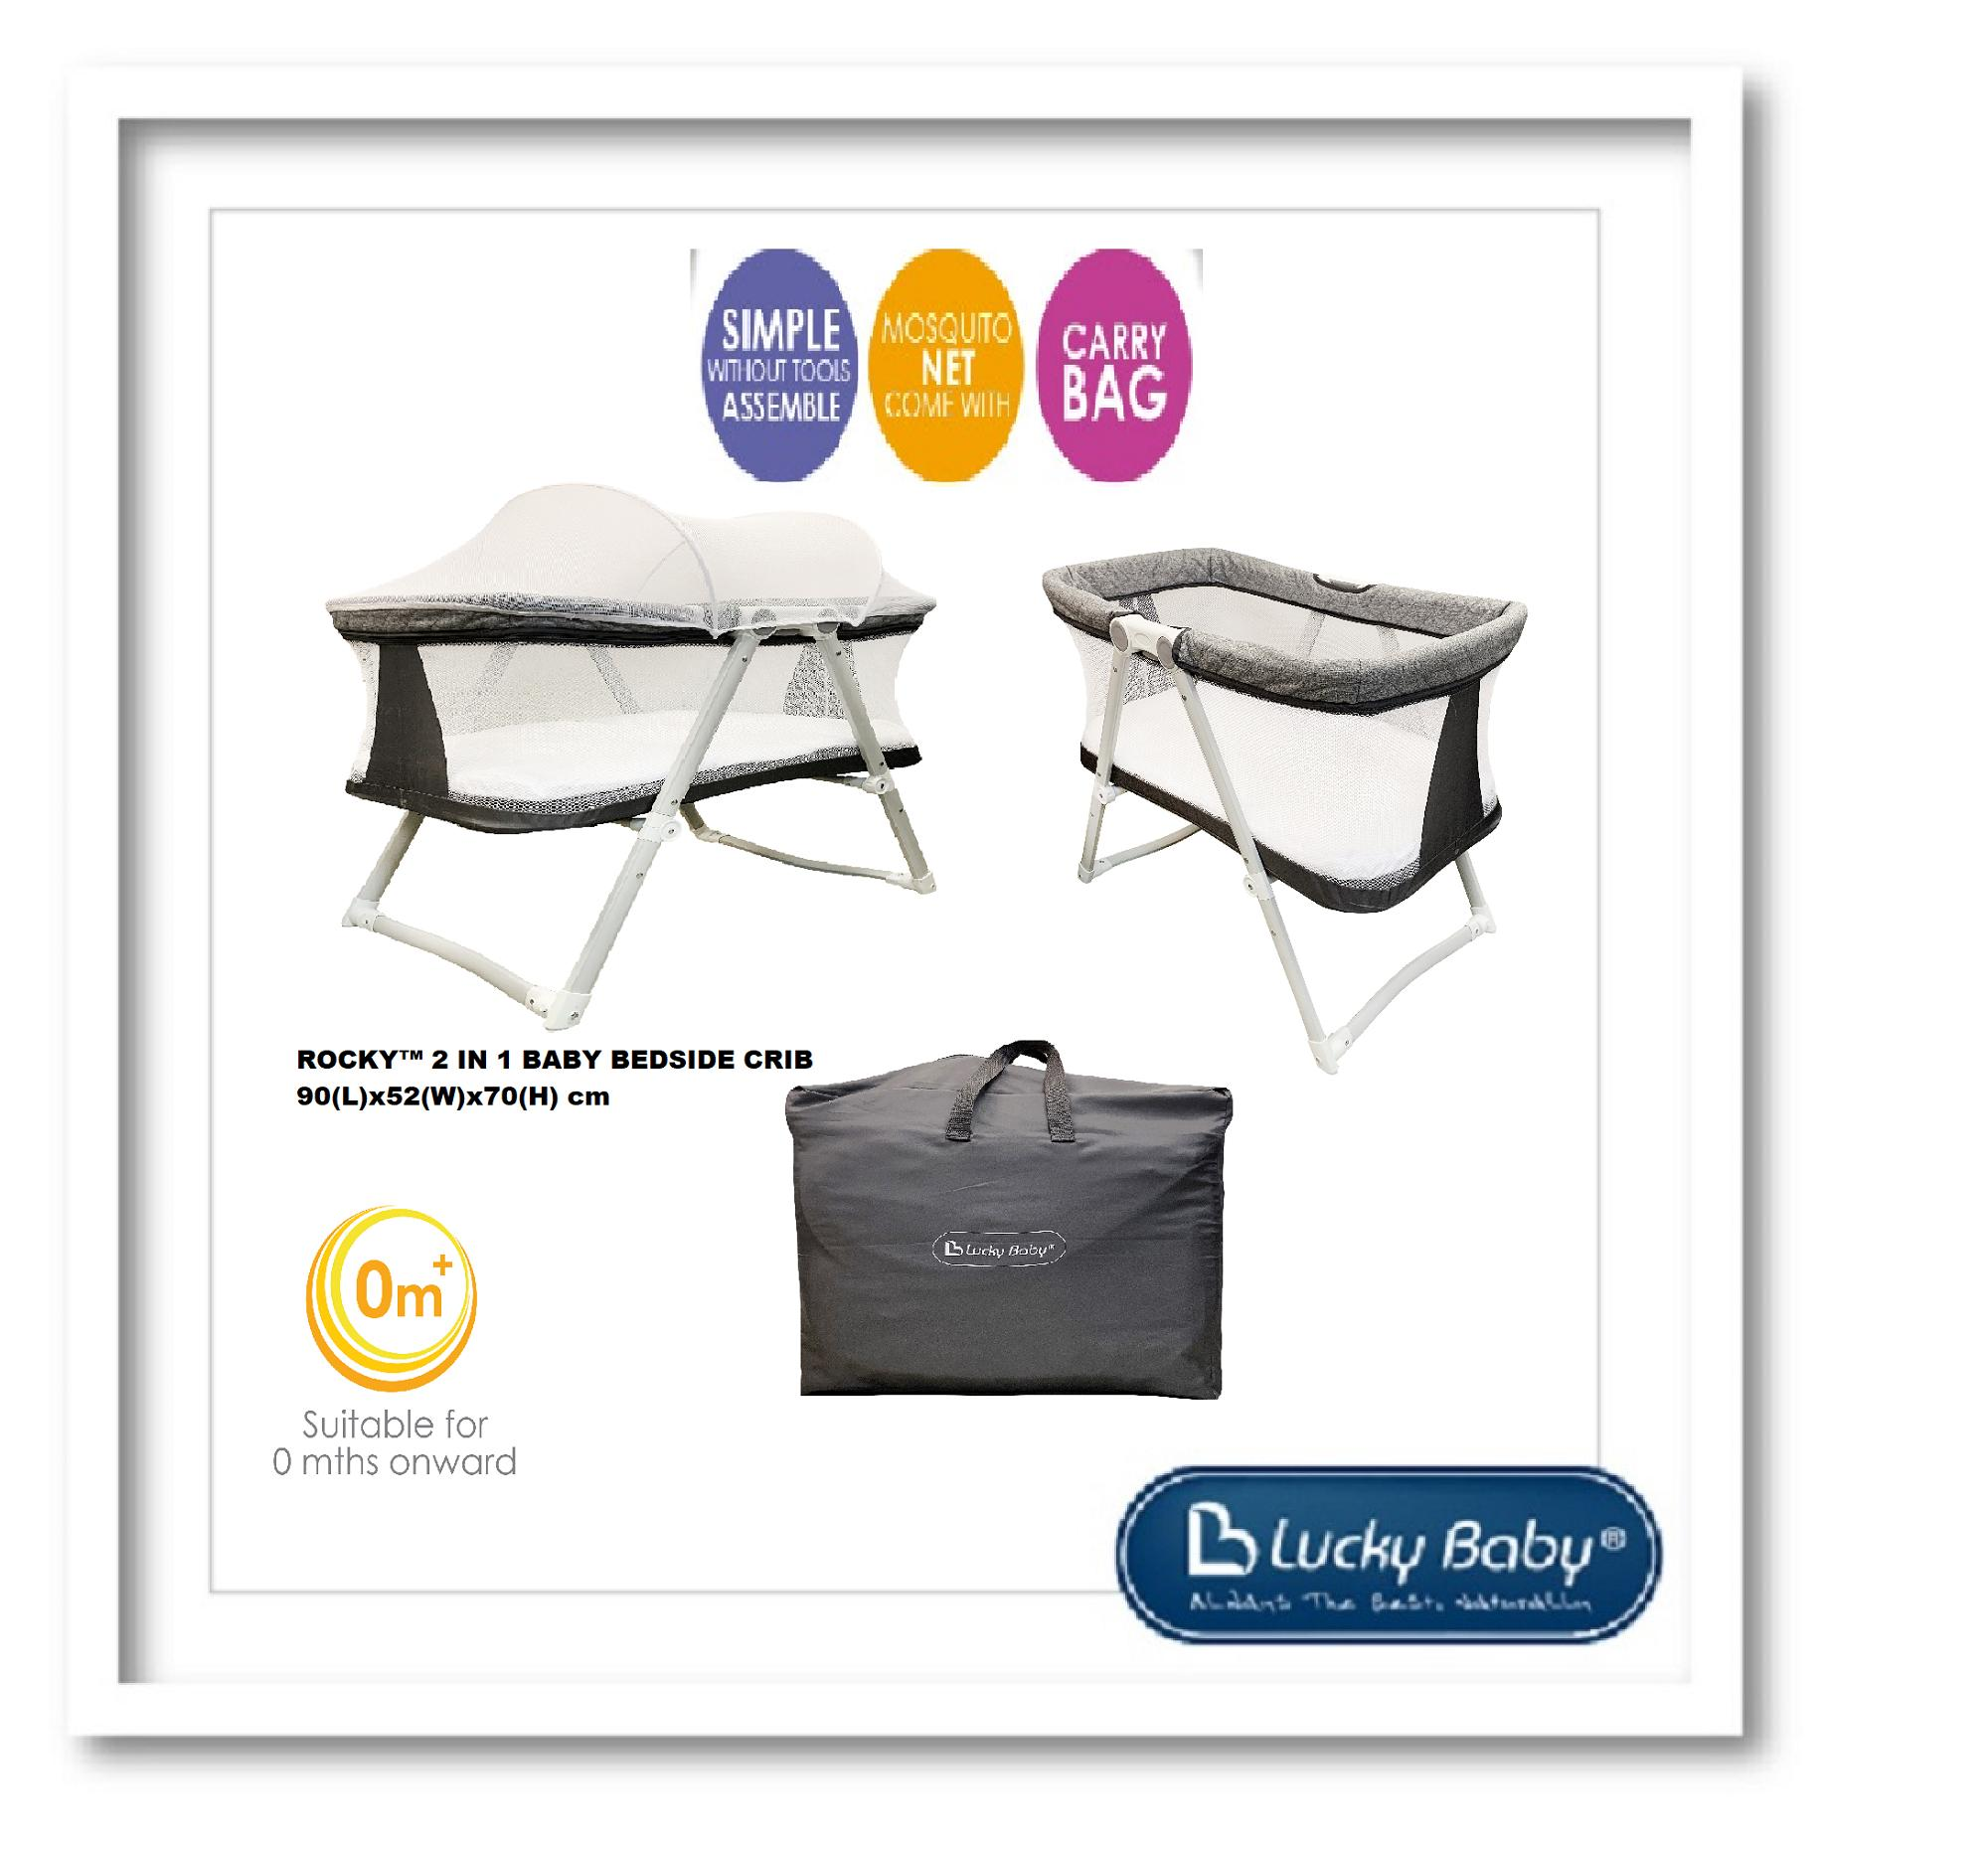 Lucky Baby® 500170 Rocky™ 2 In 1 Baby Bedside Crib By Taime Pte Ltd.